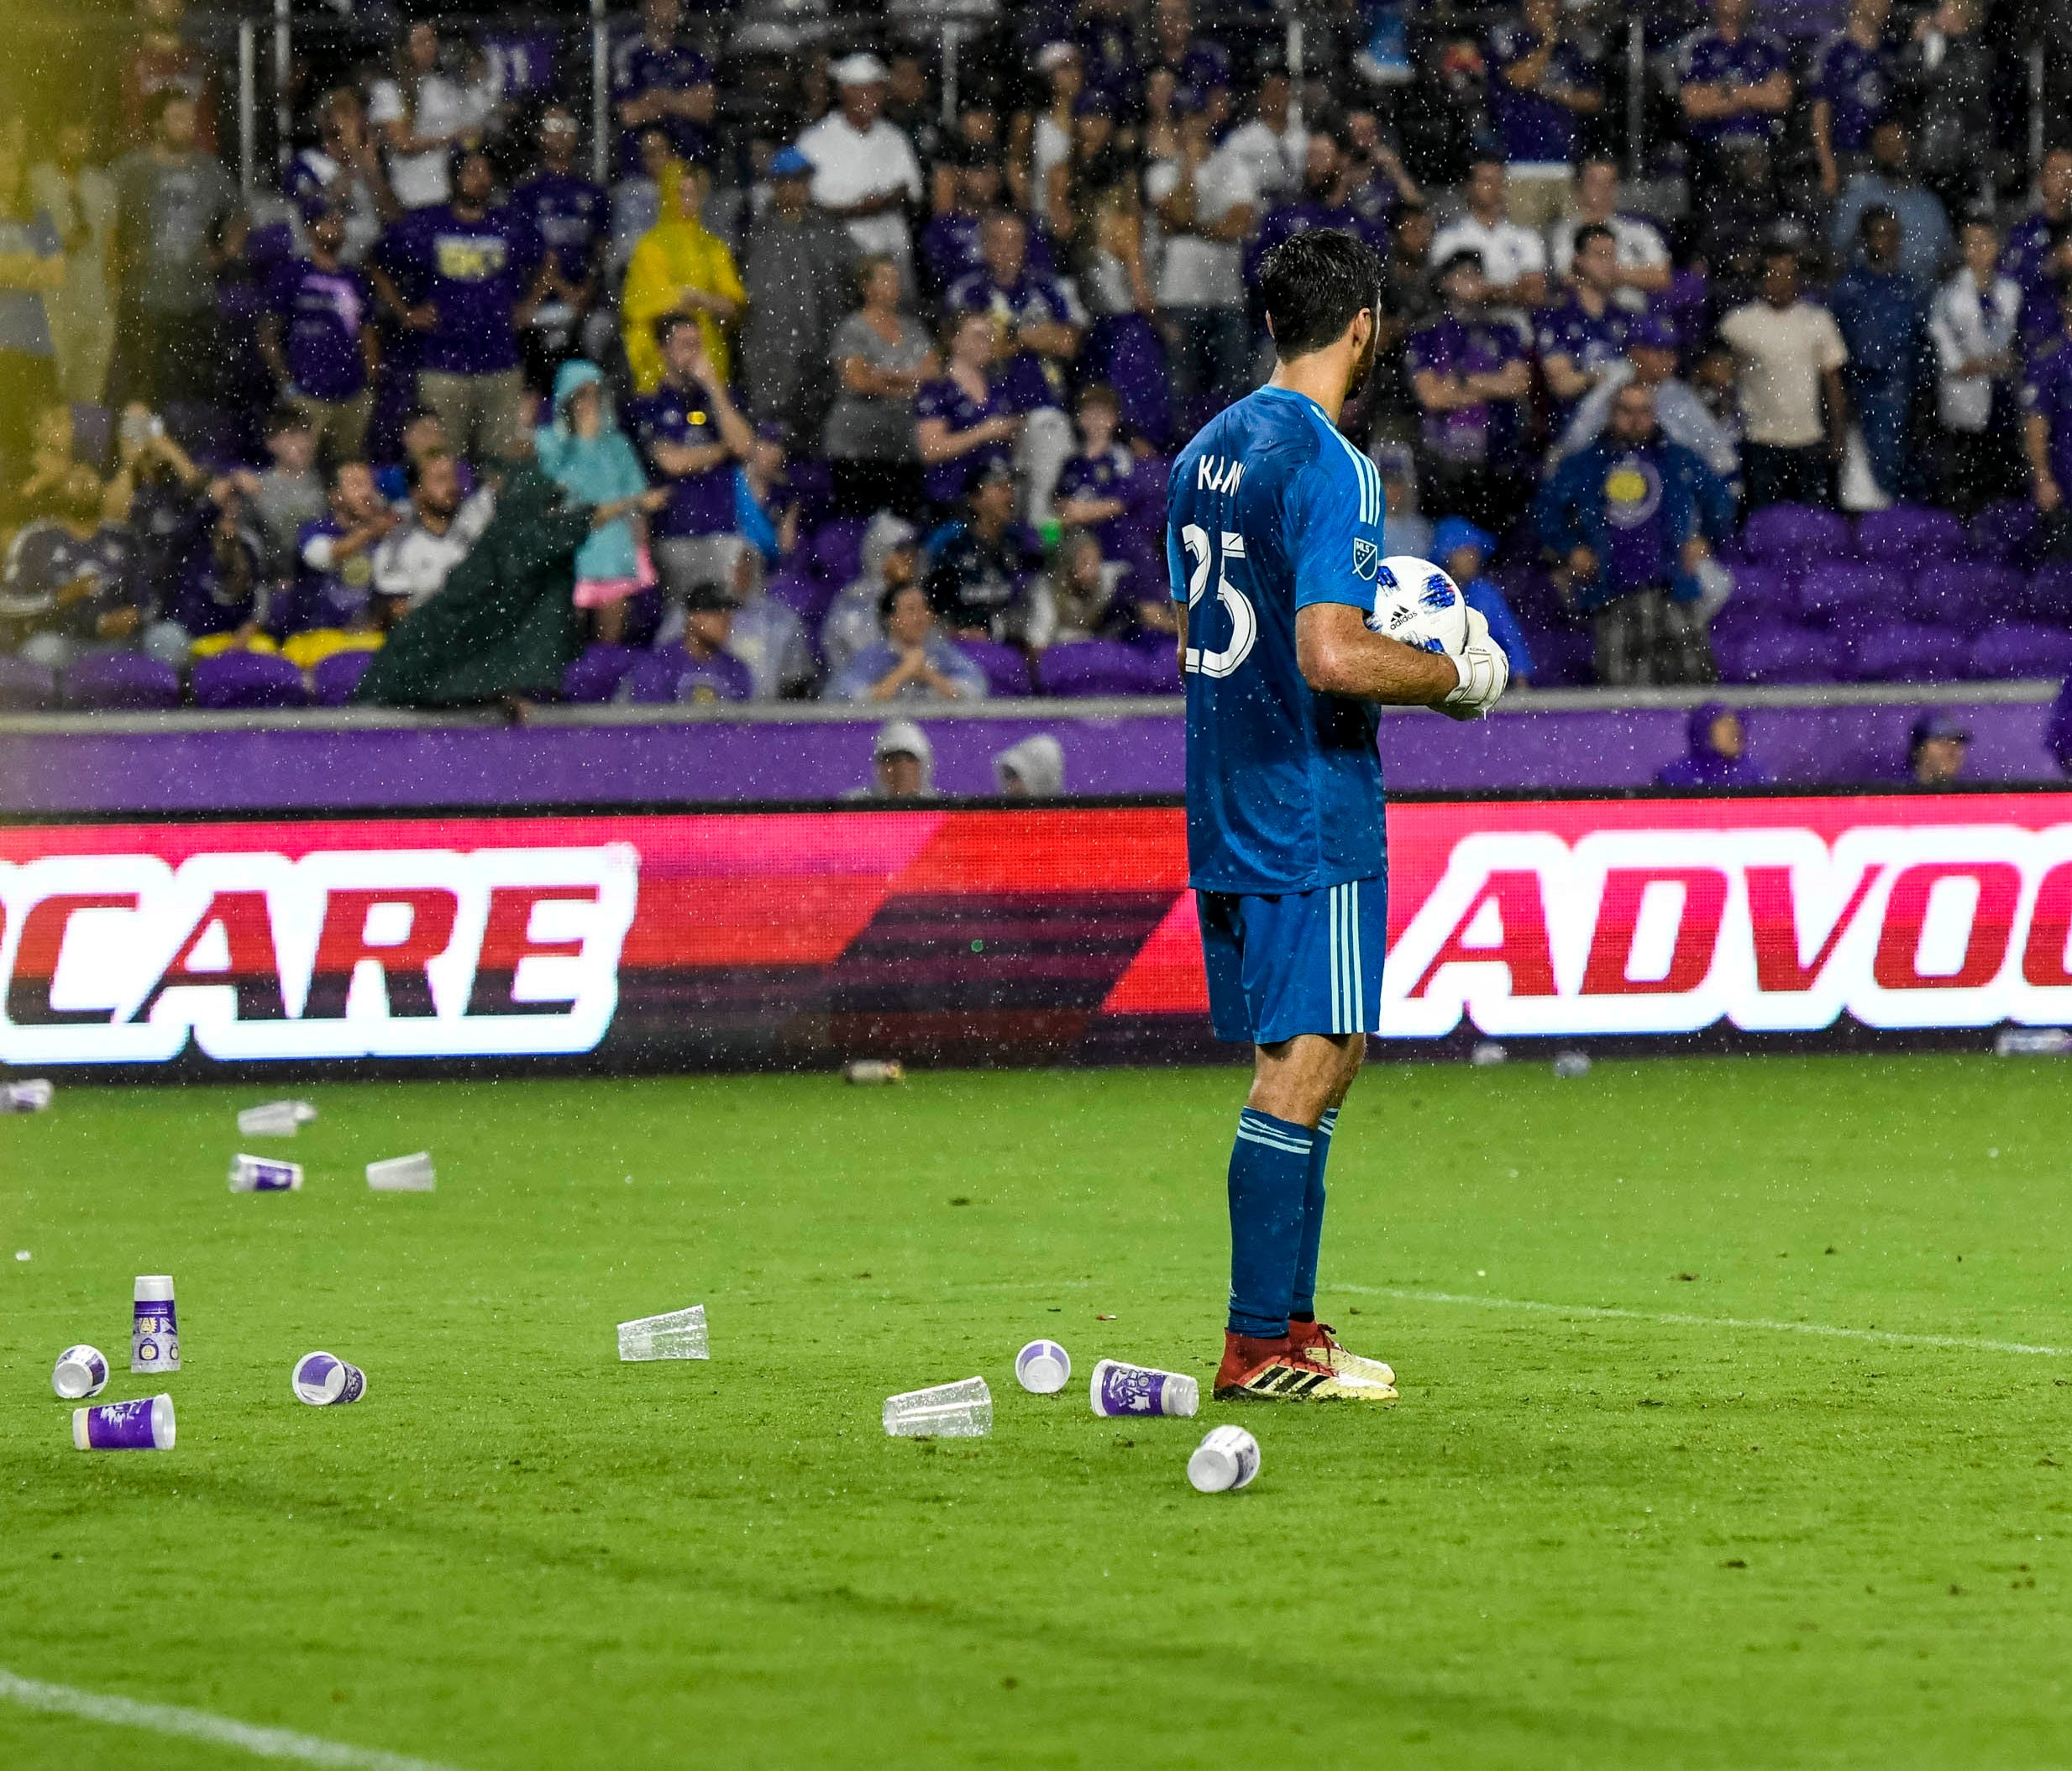 Atlanta United goalkeeper Alec Kann stands on the field as fans throw trash from the stands.